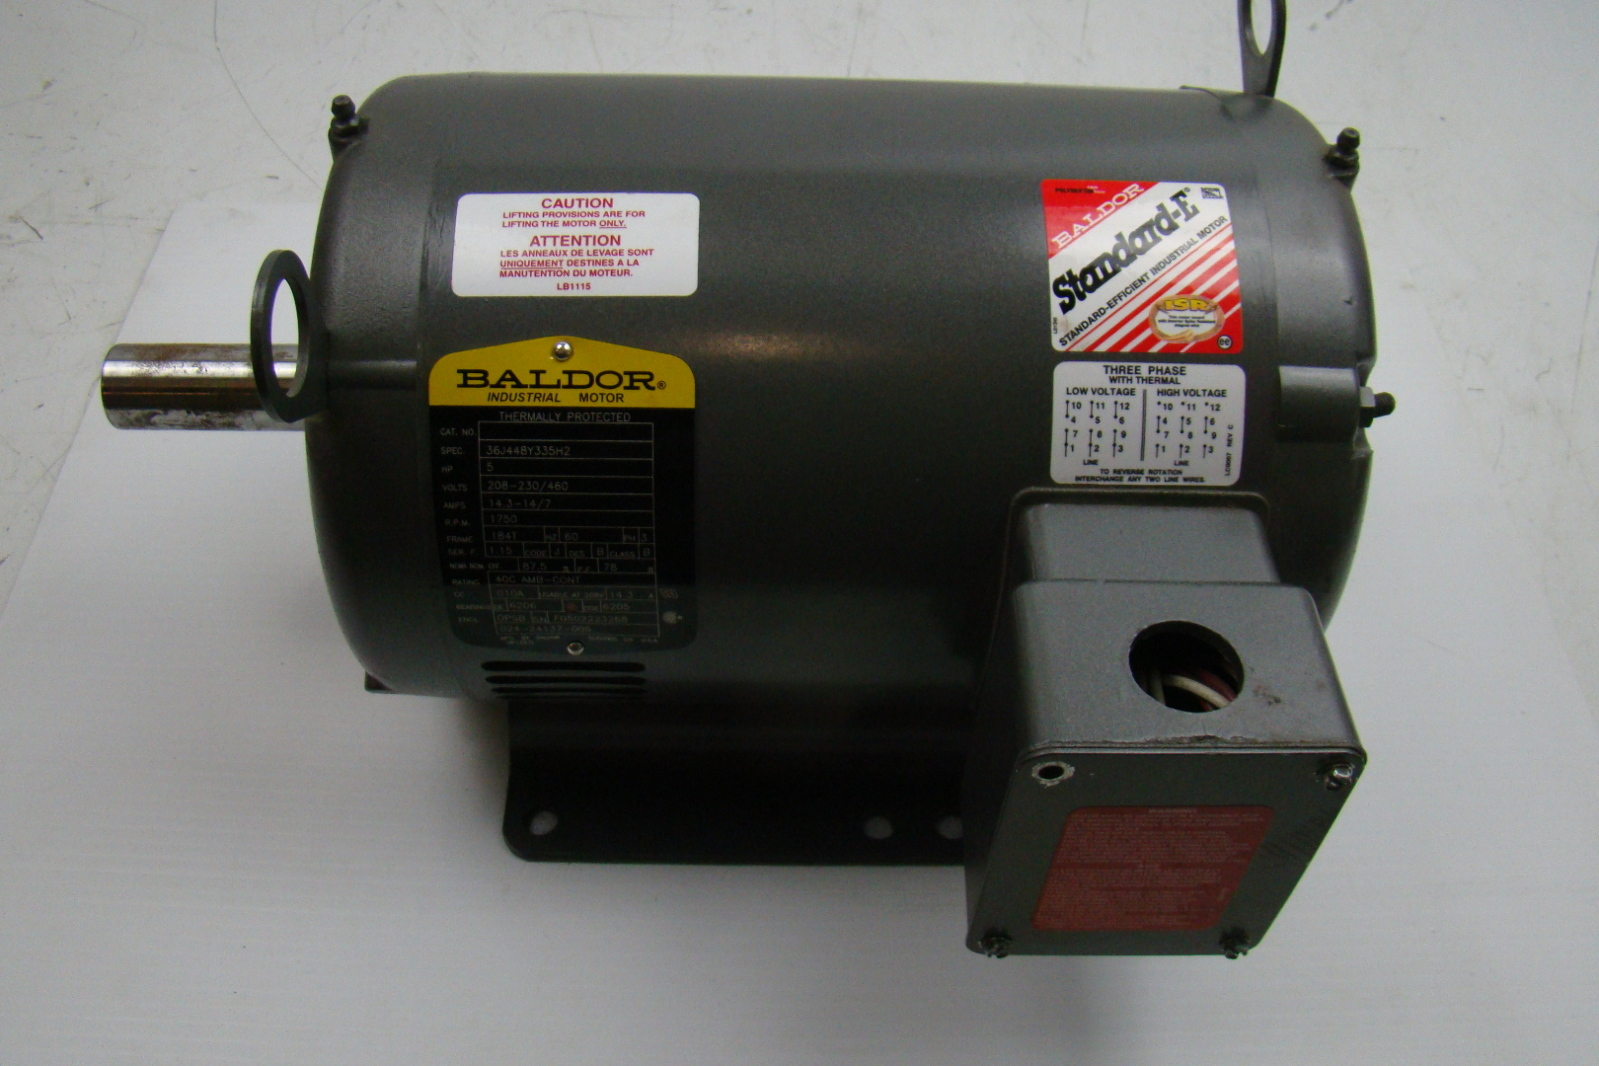 Baldor standard e 5hp electric motor 230 460v 36j448y335h2 for Baldor electric motor parts